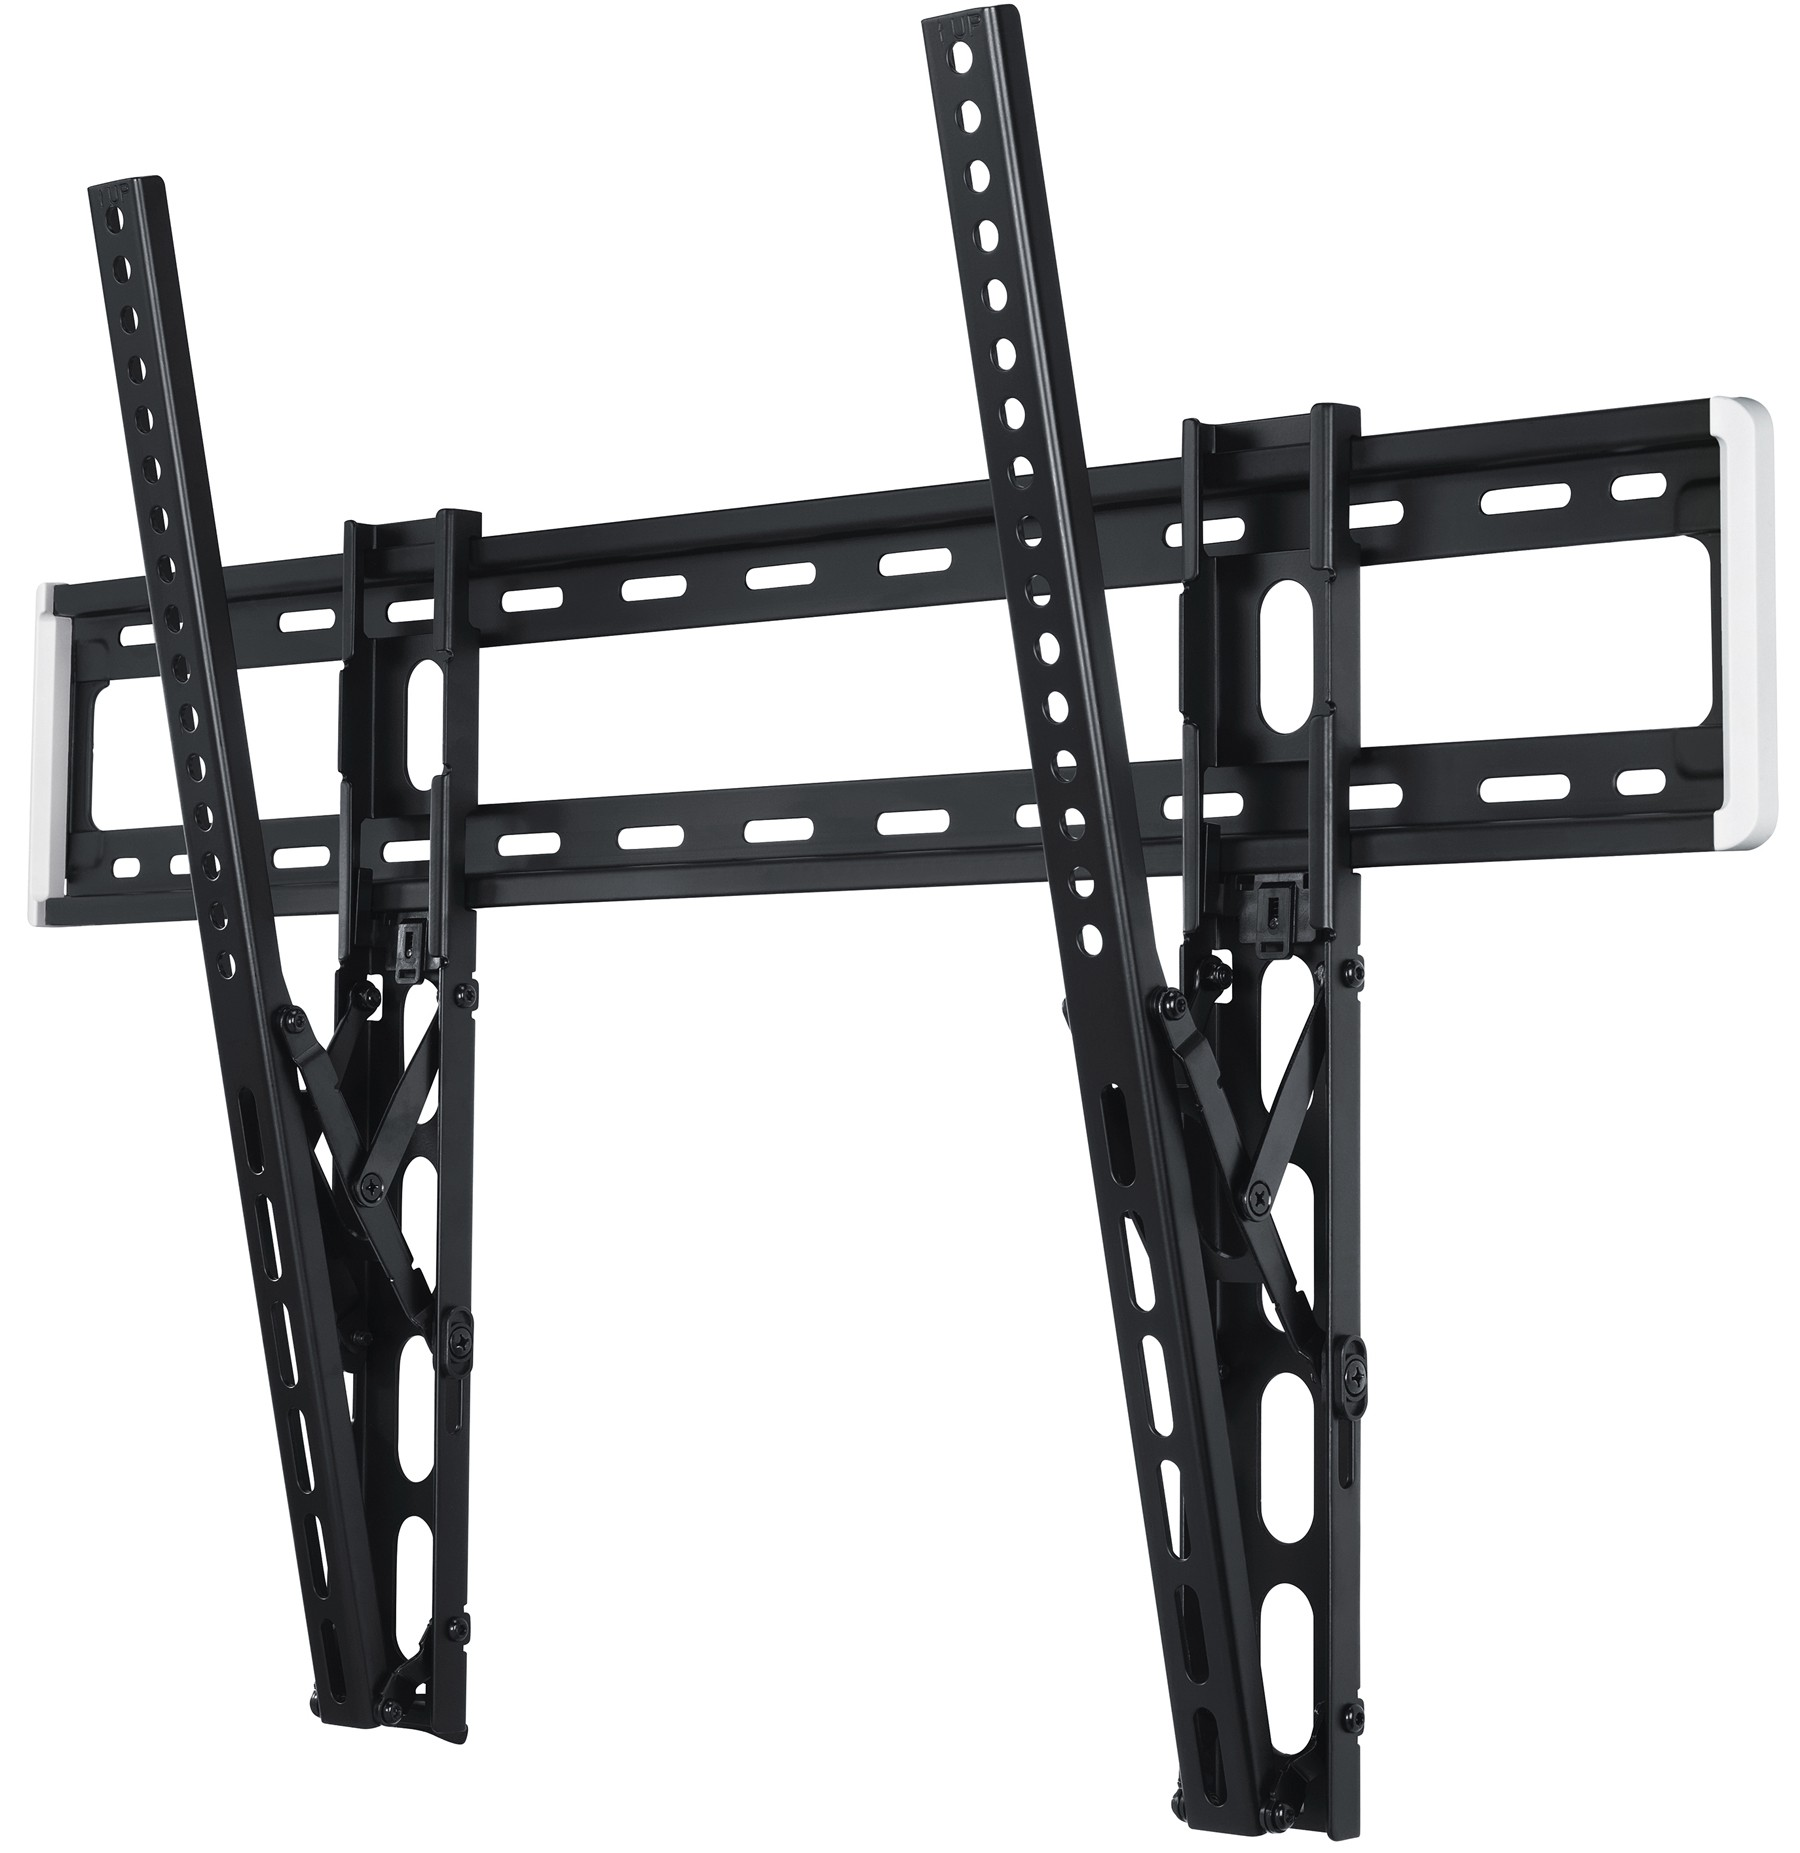 118625 : Hama tiltbart veggfeste XL for TV